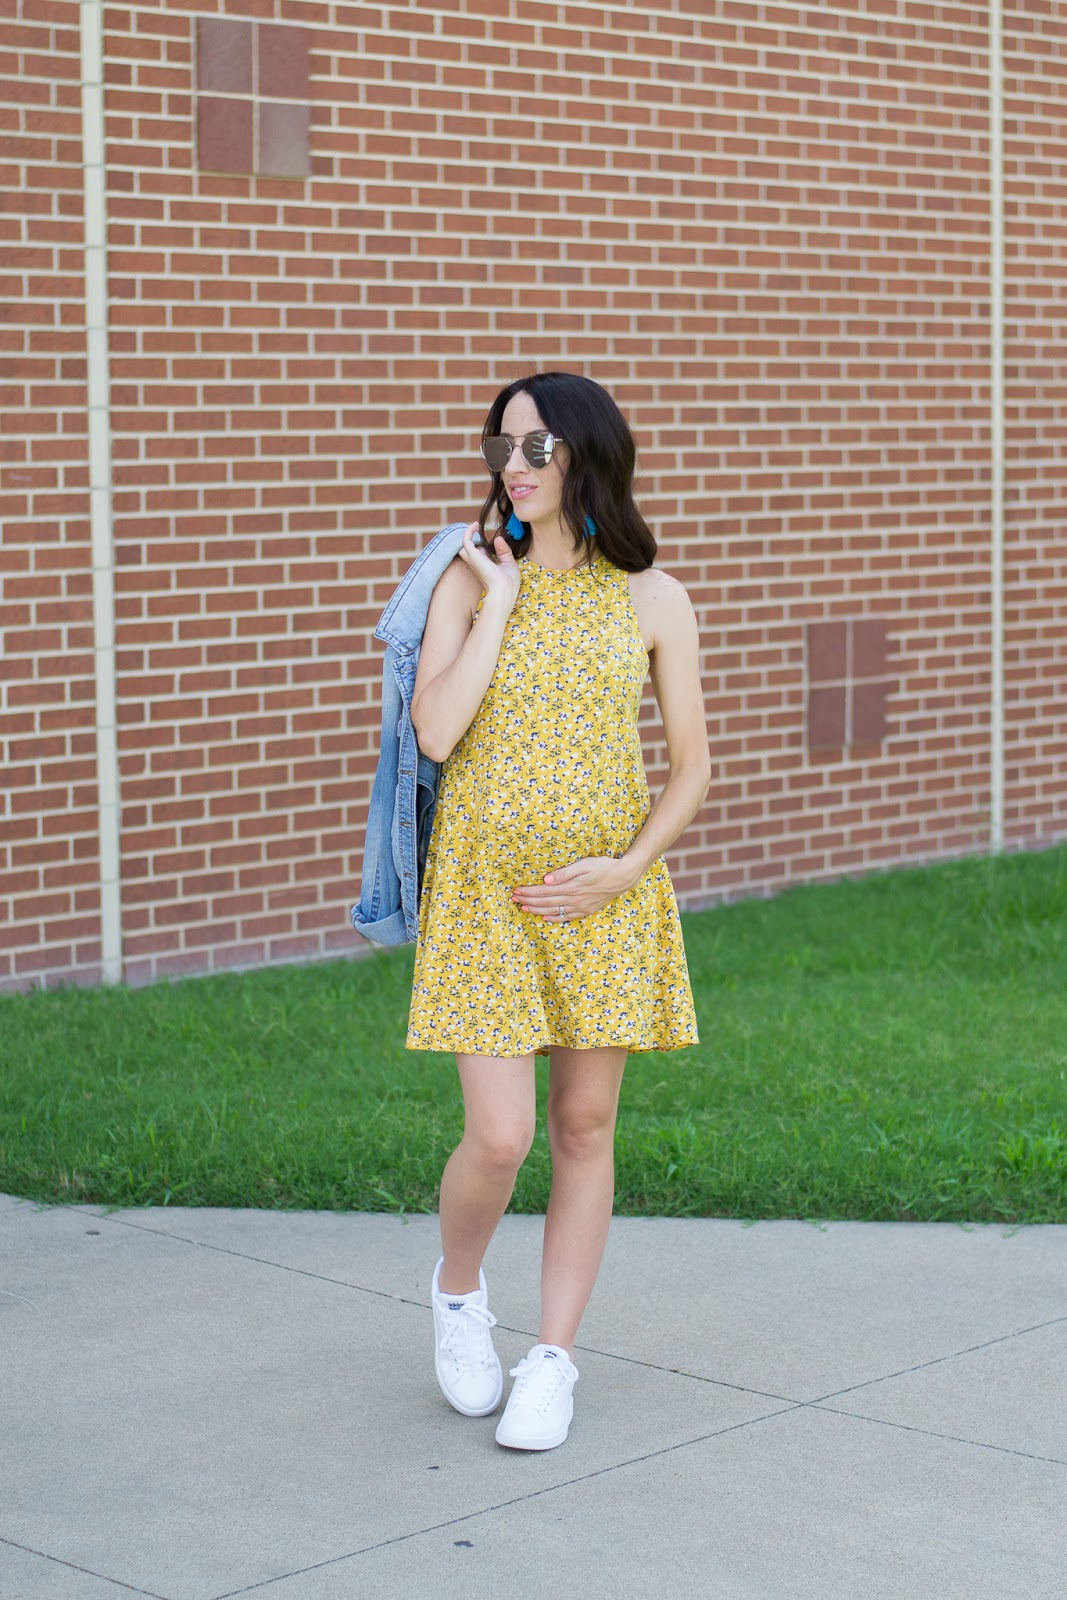 Maternity Style summer dress and sneakers